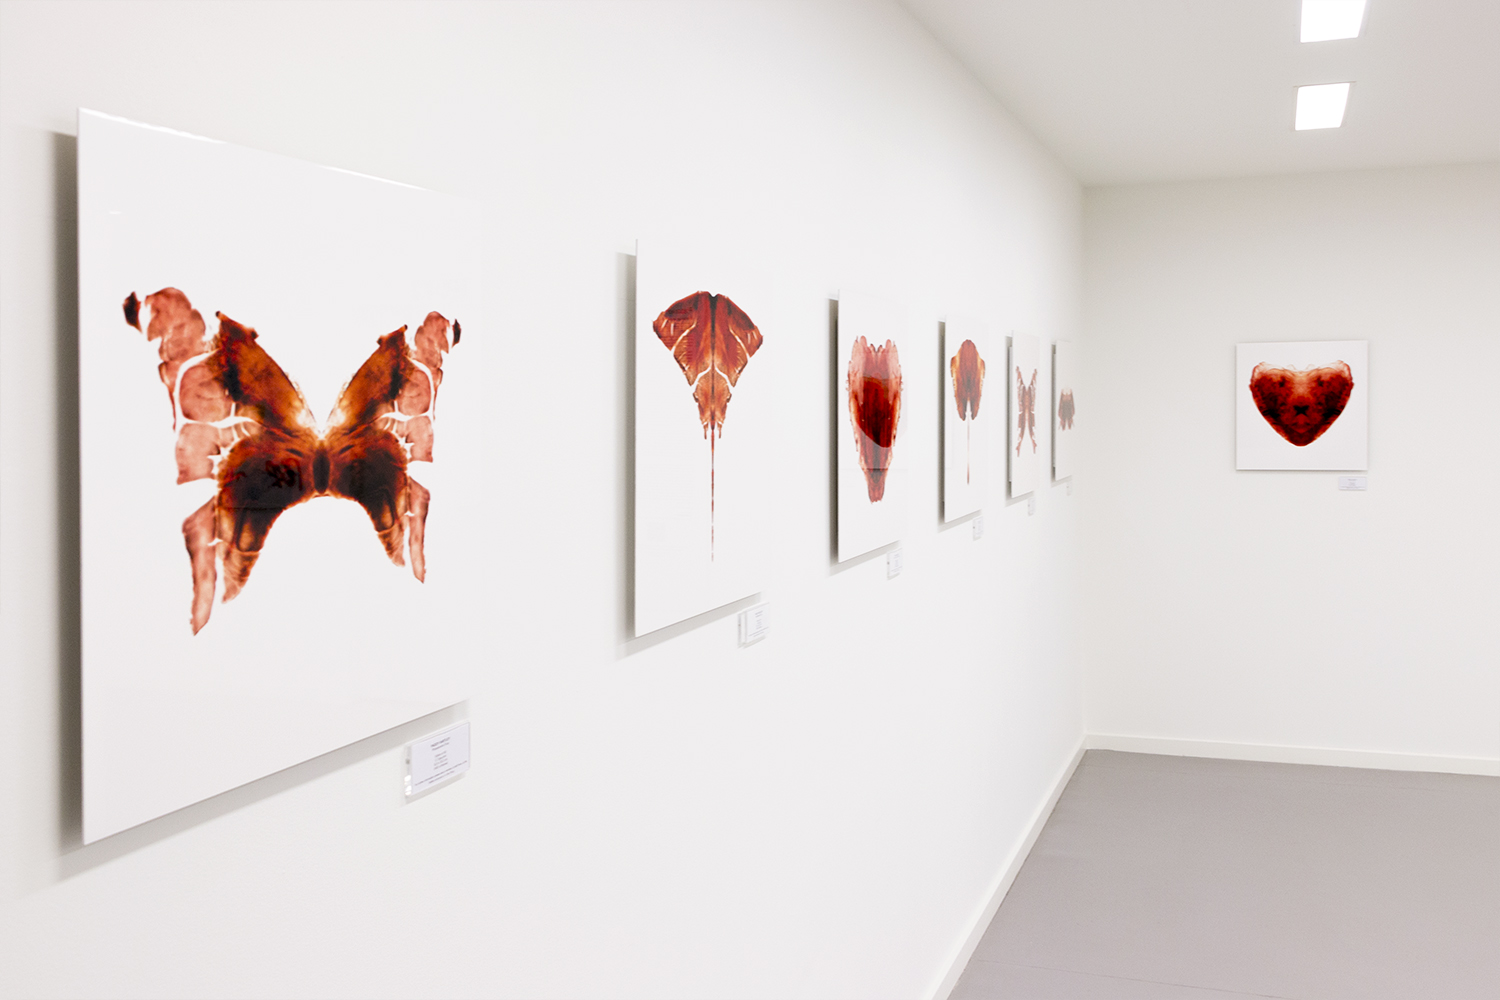 Saatchi Gallery, London  The Aligera Series 1. Lambs Heart tissue compositions. Limited edition C-Type prints.